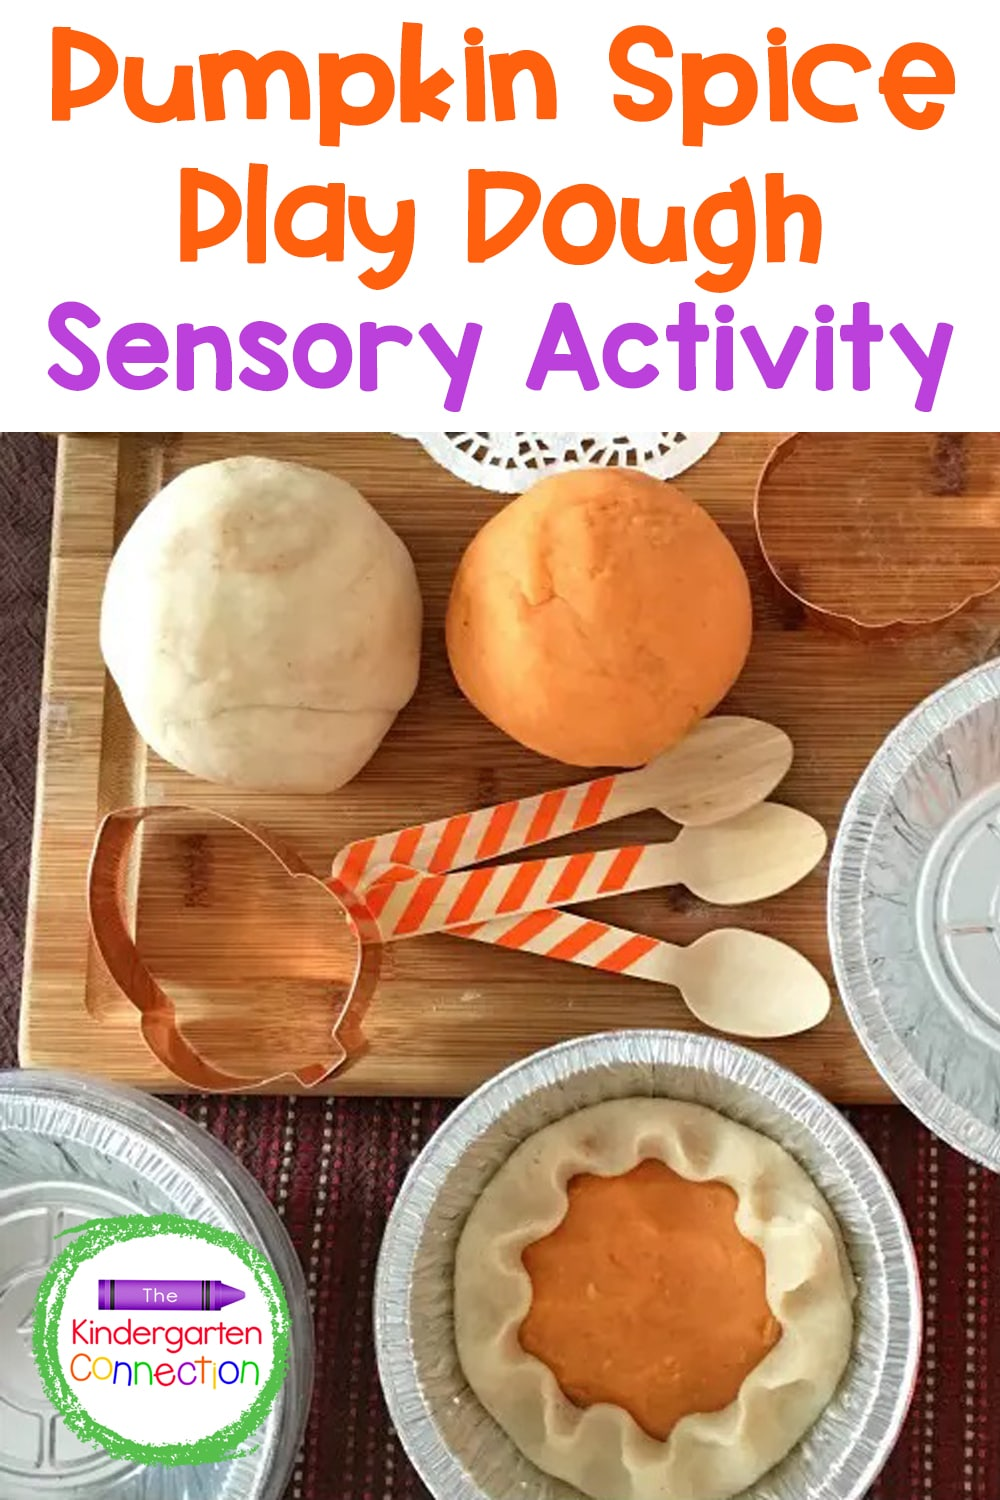 This pumpkin spice play dough is easy to make, and is perfect for dramatic play and sensory exploration this fall in the classroom or home!